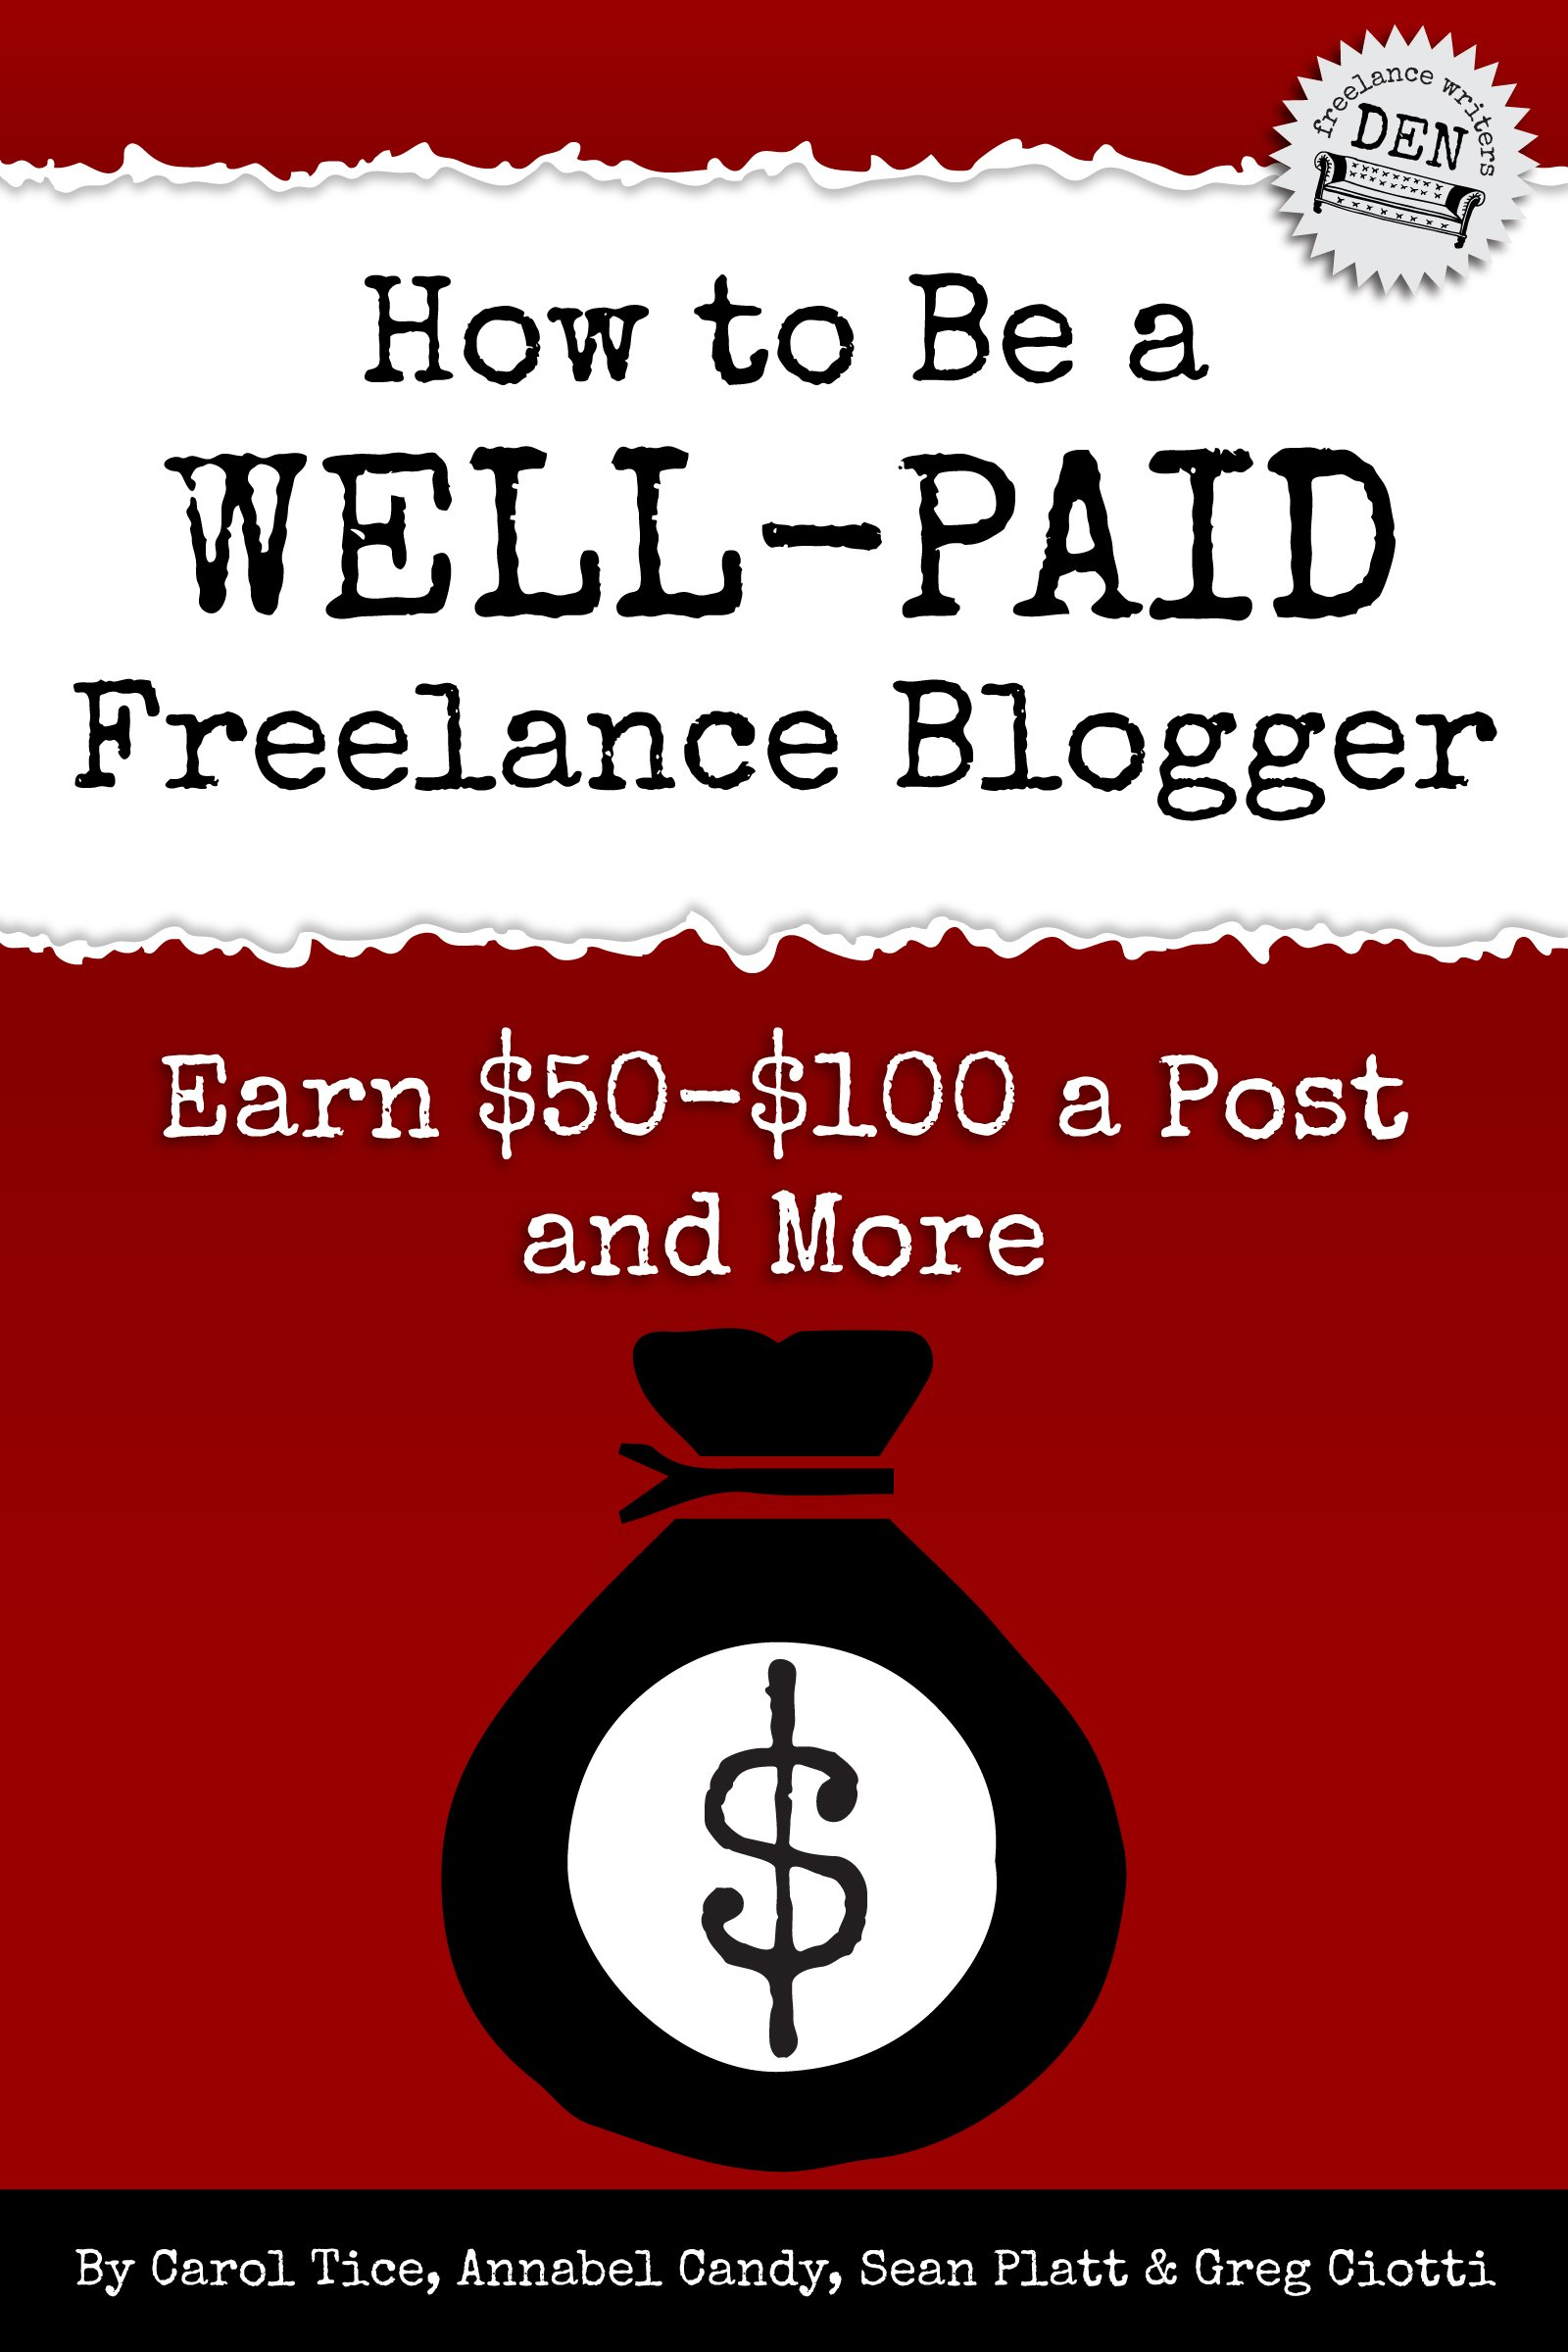 How To Be A Well Paid Freelance Blogger  Earn $50 $100 A Post And More  Freelance Writers Den Book 1   English Edition